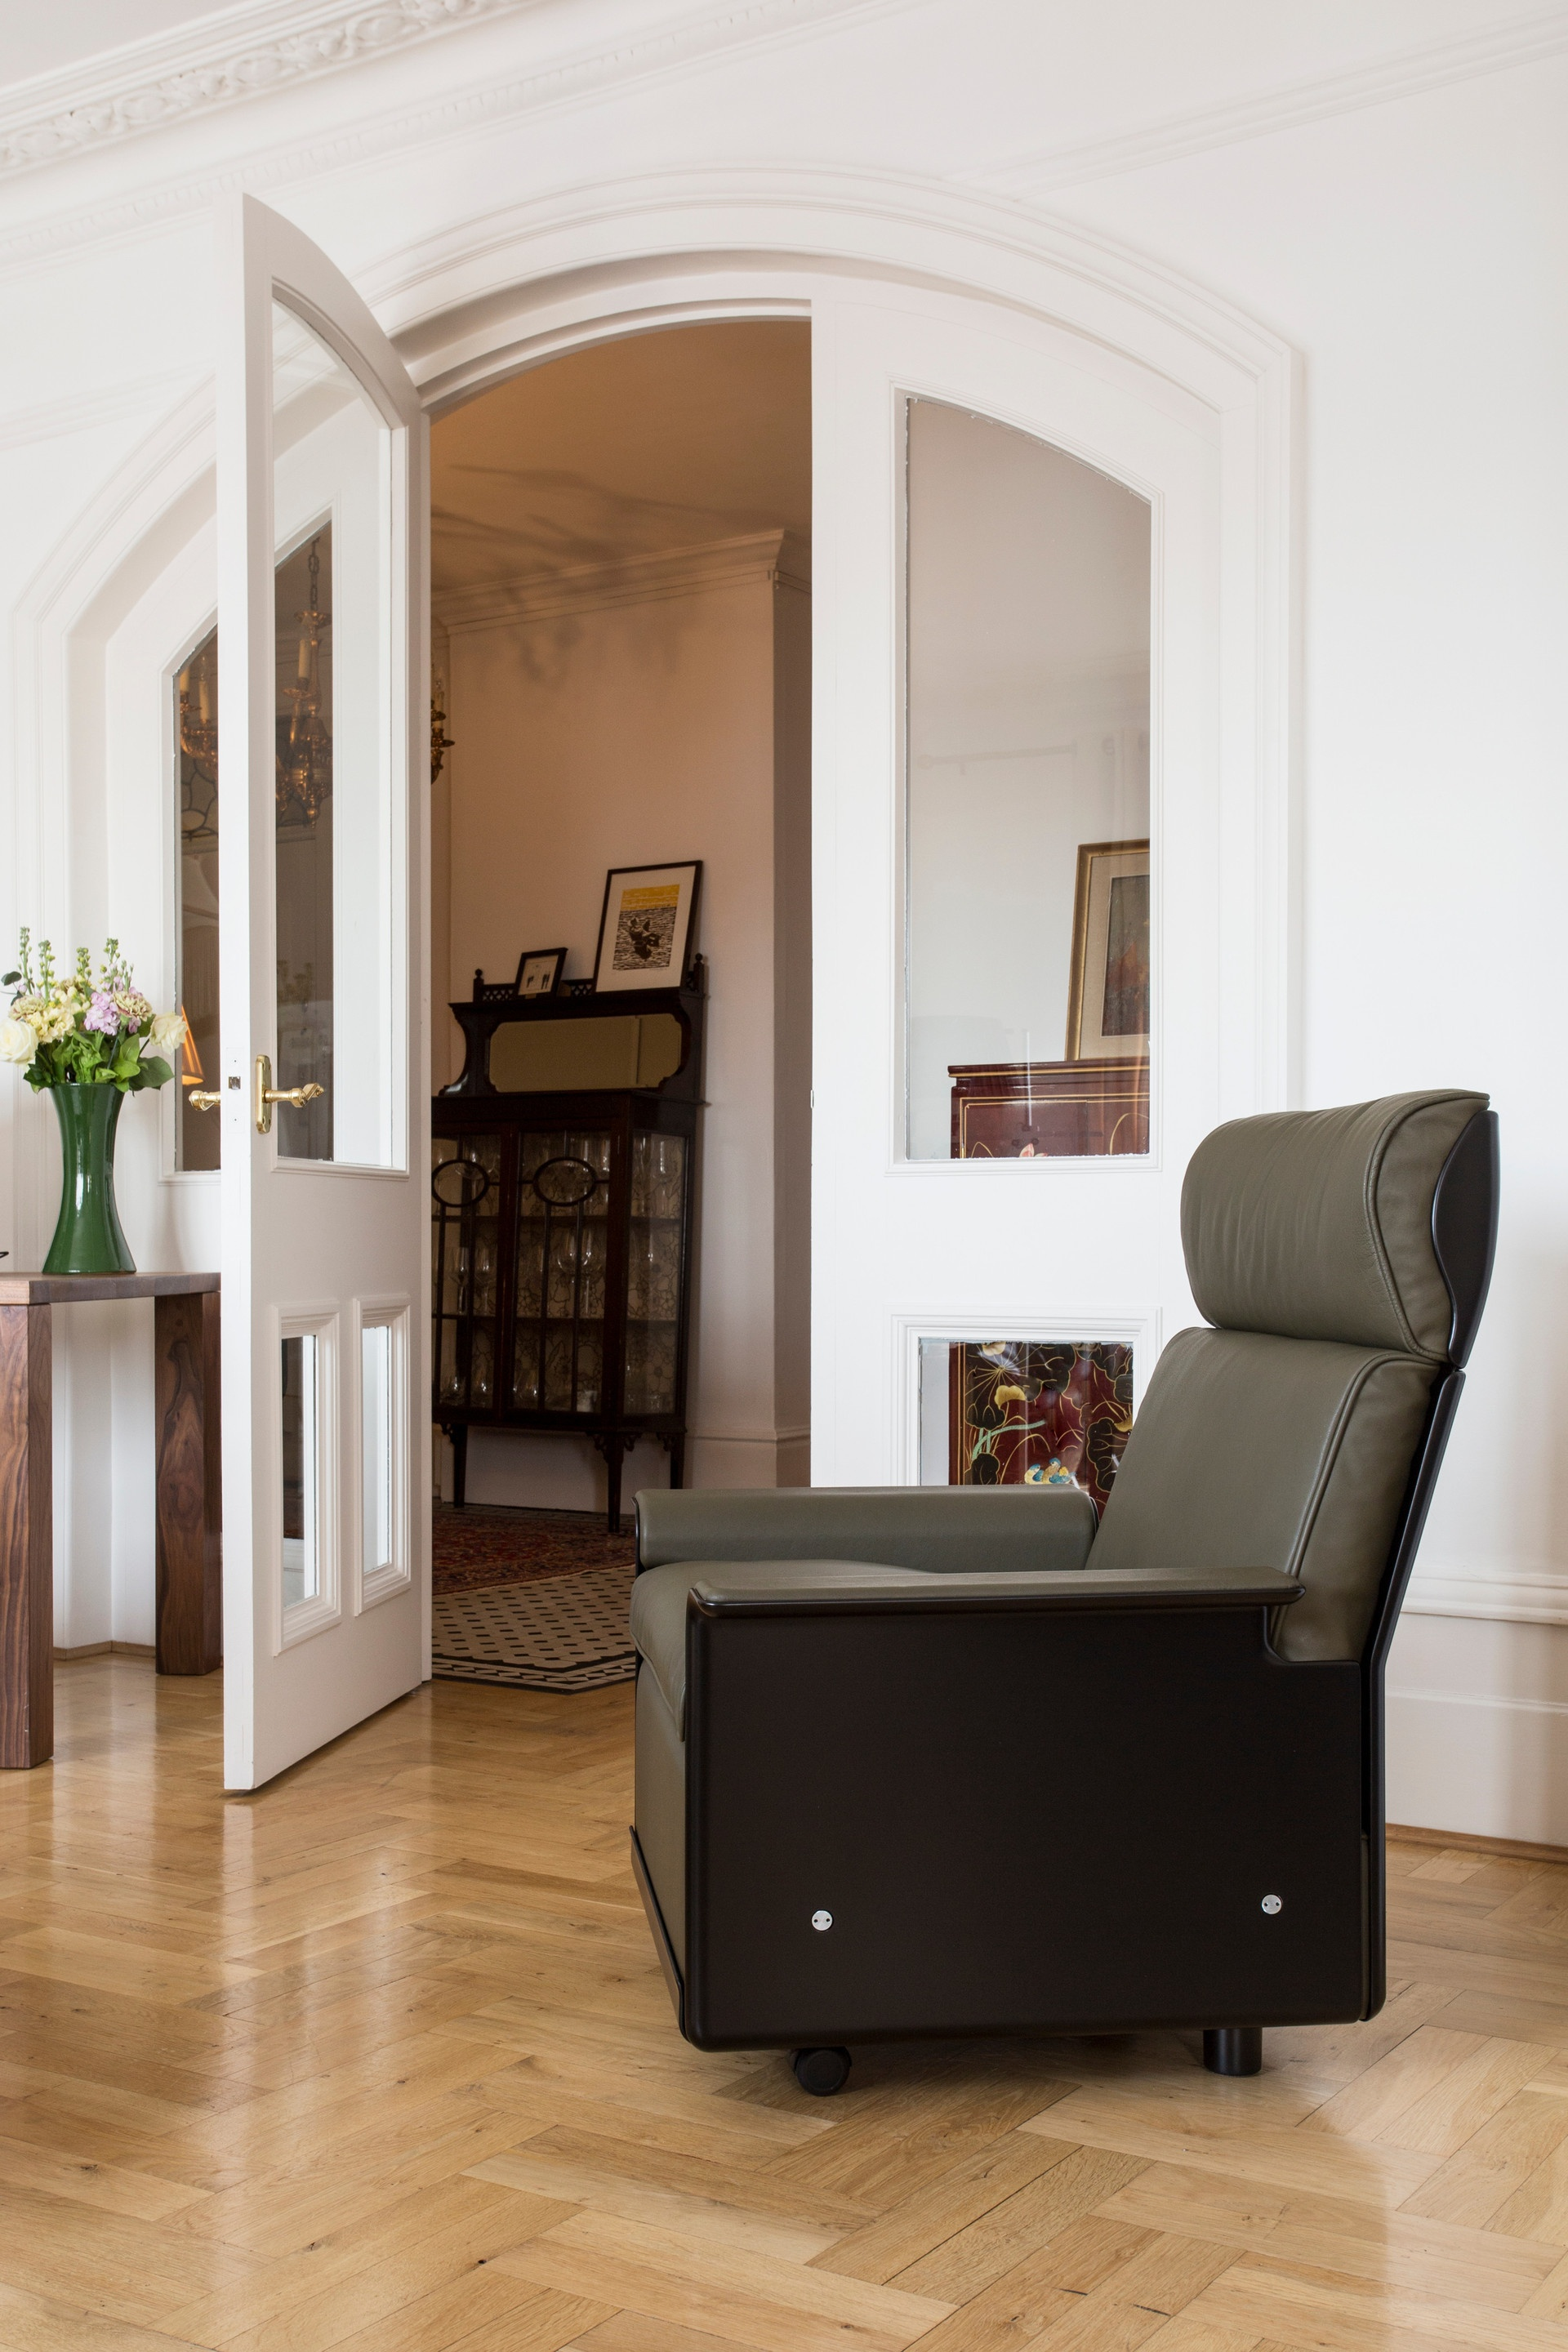 The 620 chair can be changed from a low back to a high back with relative ease using one simple tool